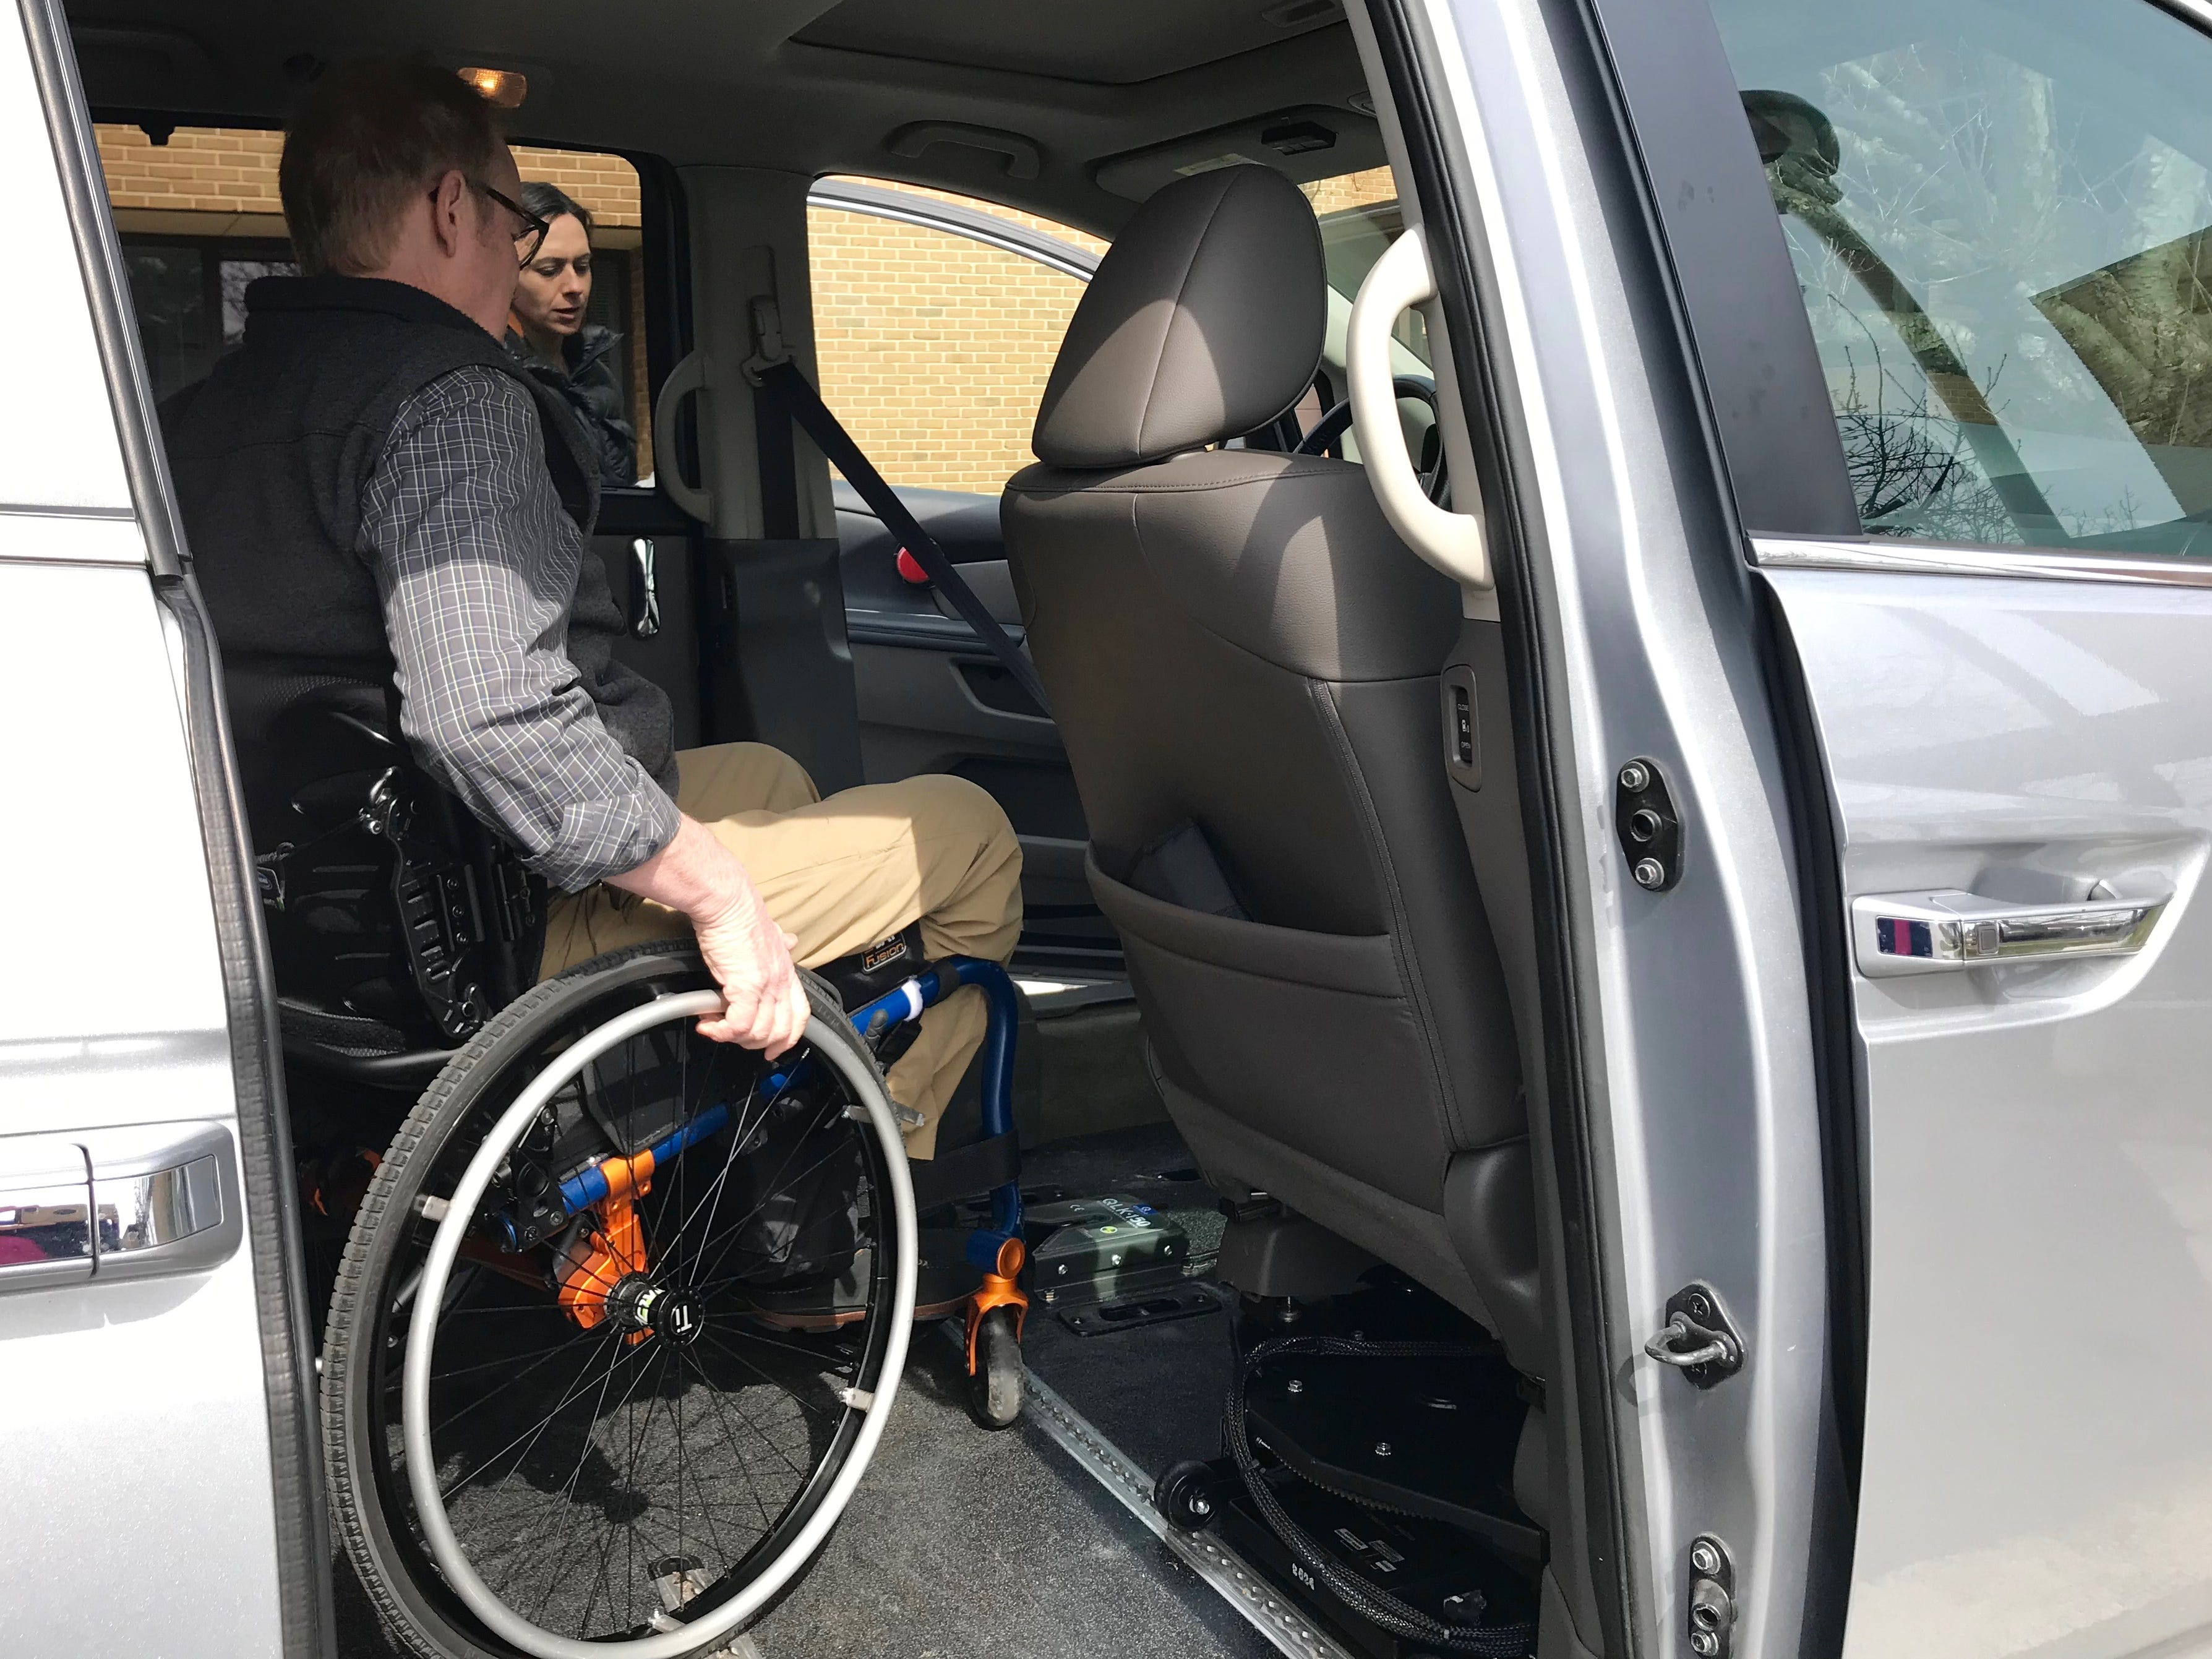 Dr. Robert Kyler receives physical and occupational therapies at Wilson Workforce and Rehabilitation Center in Fishersville. Photographed in the parking lot with Sonya Gasser, occupational therapist, as they evaluate the benefits of owning a handicap-accessible Honda minivan, on Wednesday, March 20, 2019.